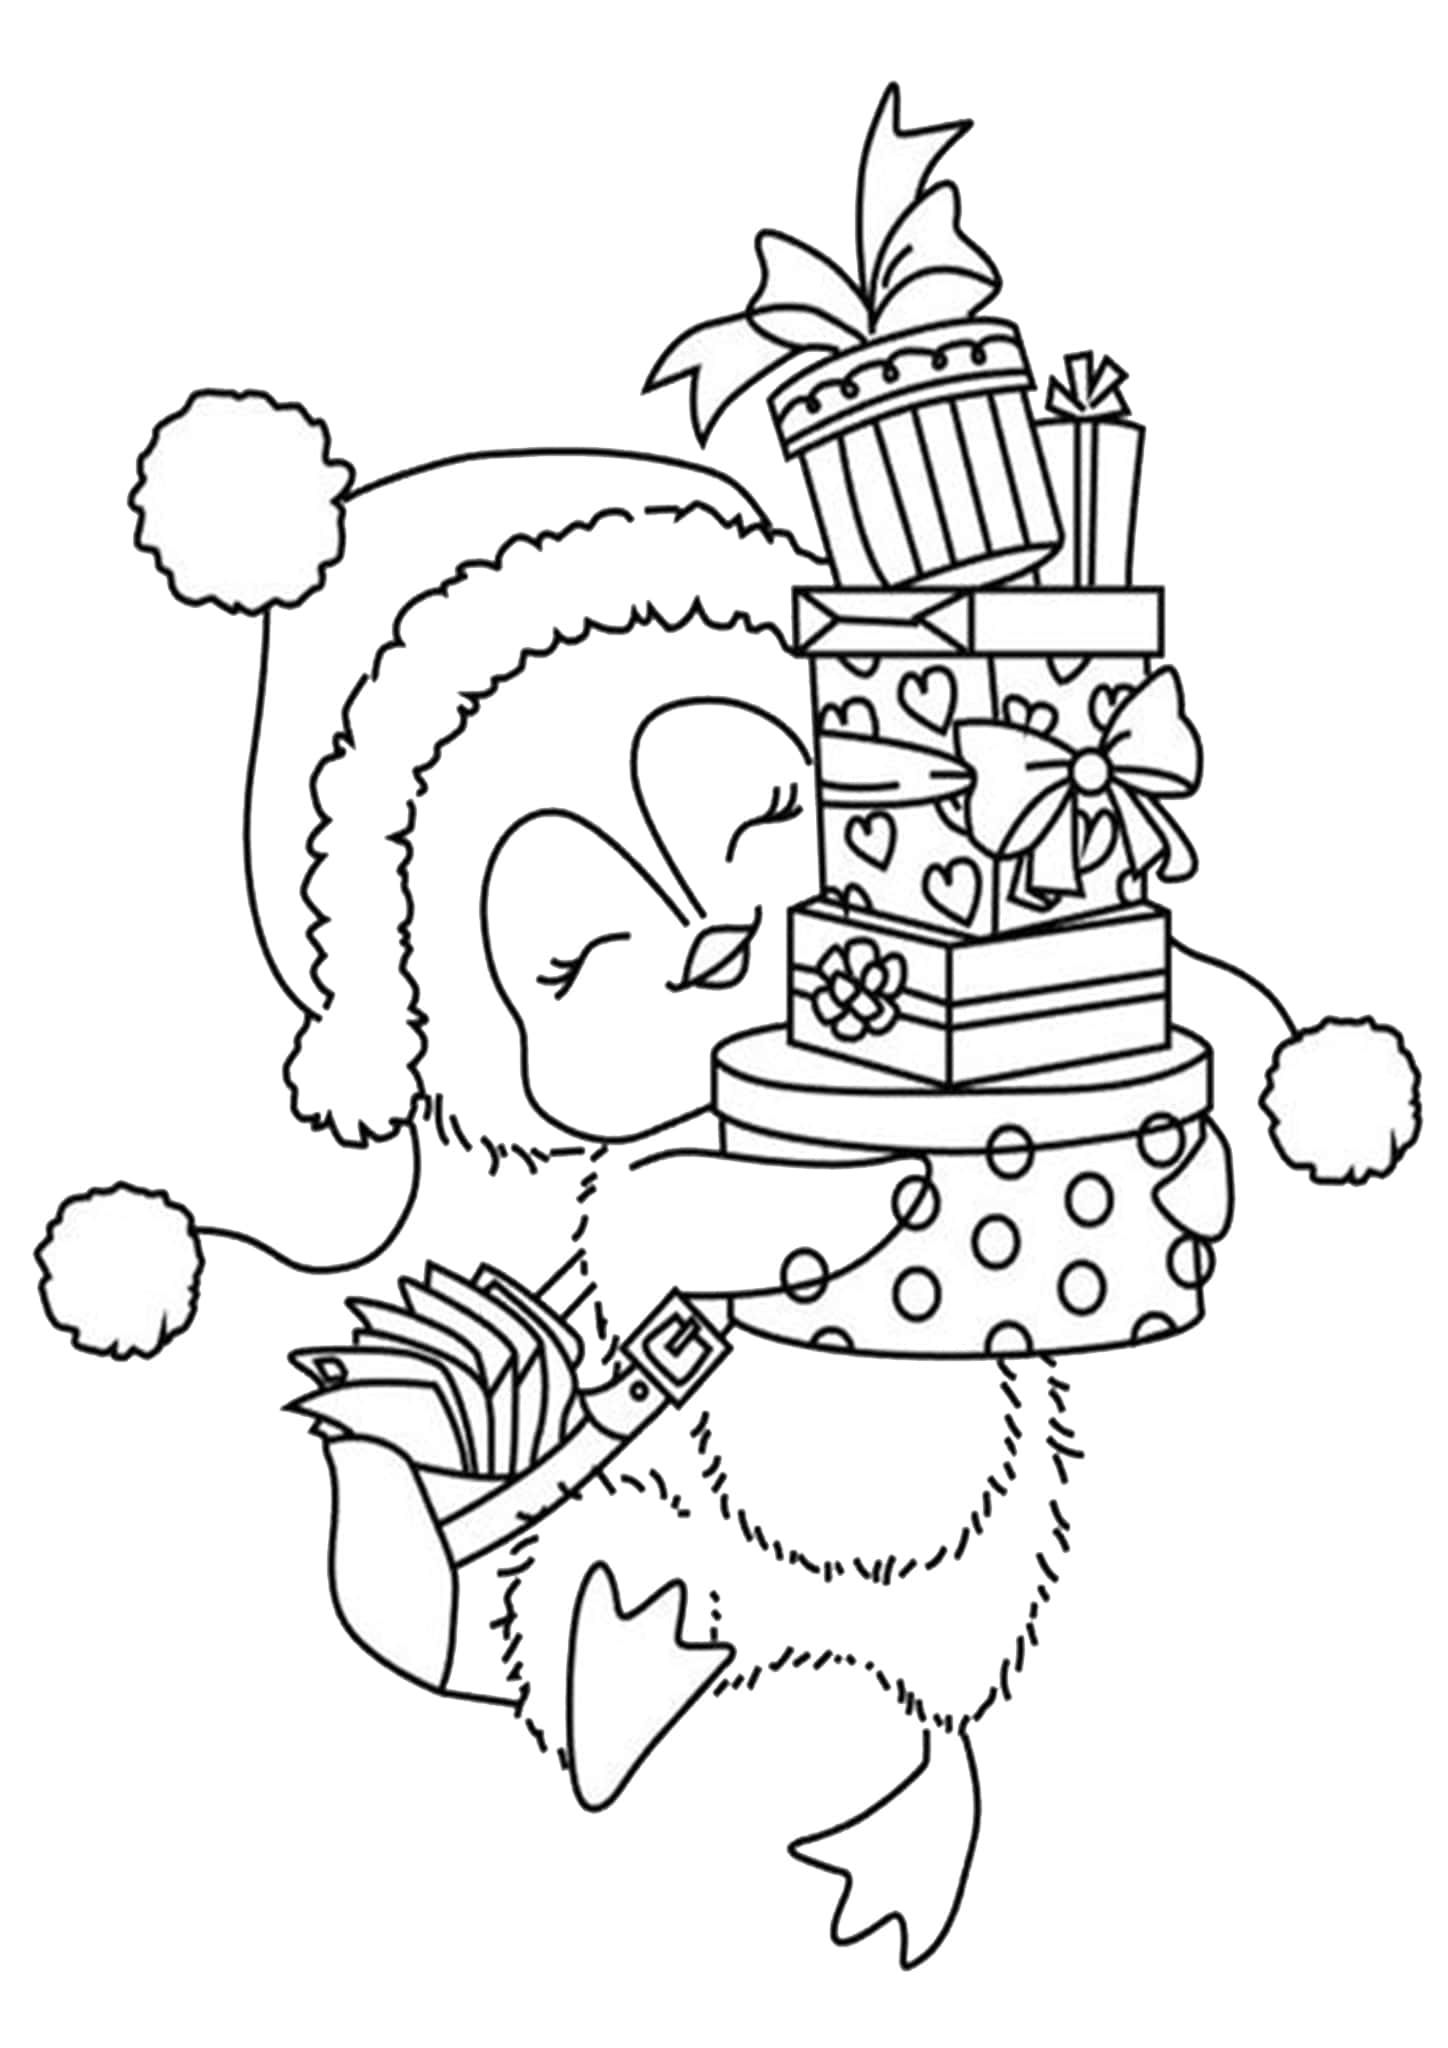 Free Easy To Print Baby Animal Coloring Pages Christmas Coloring Sheets Christmas Coloring Pages Animal Coloring Pages